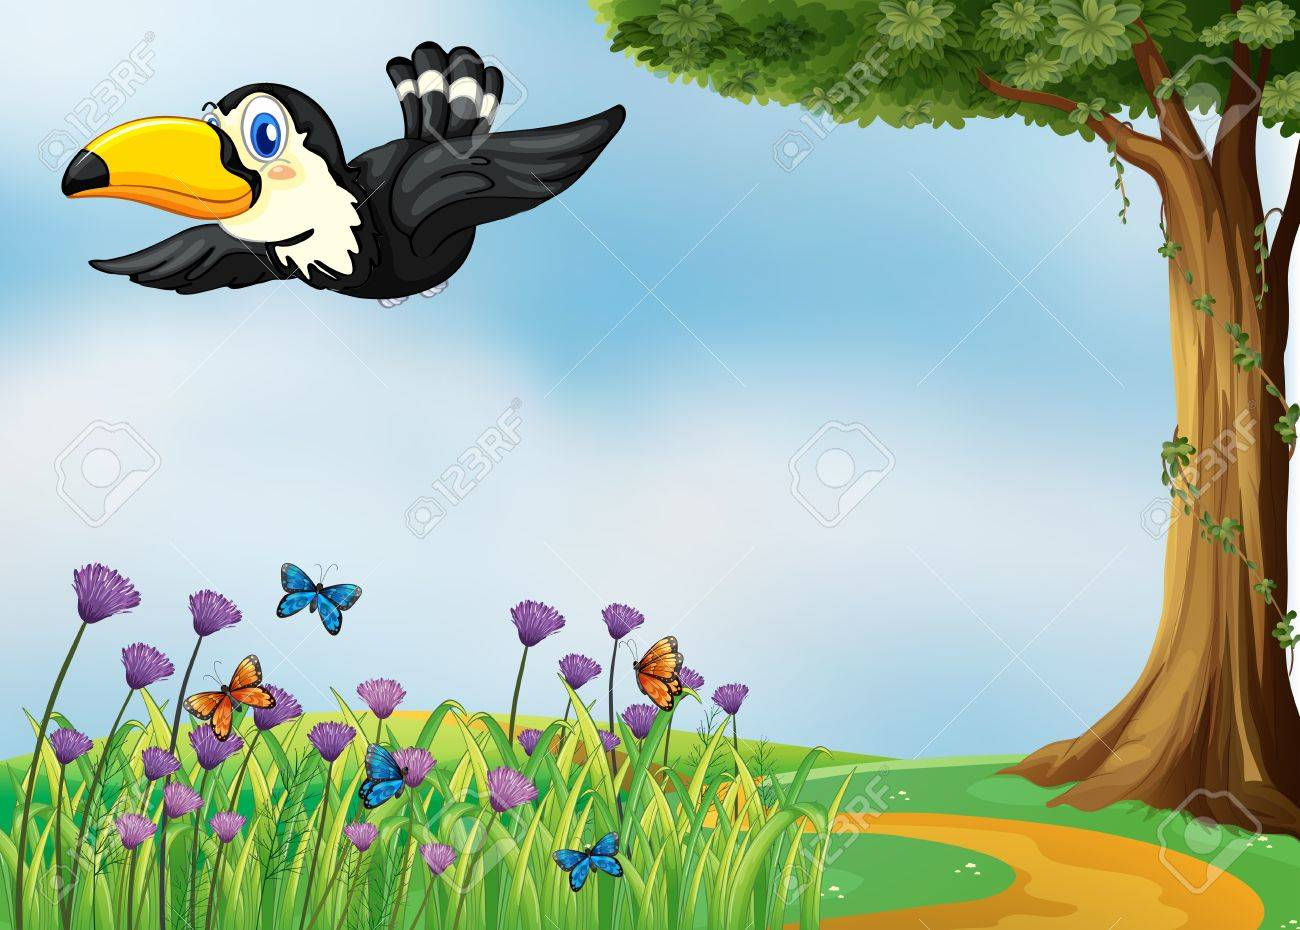 Illustration of a flying bird in a beautiful nature Stock Vector - 17896357